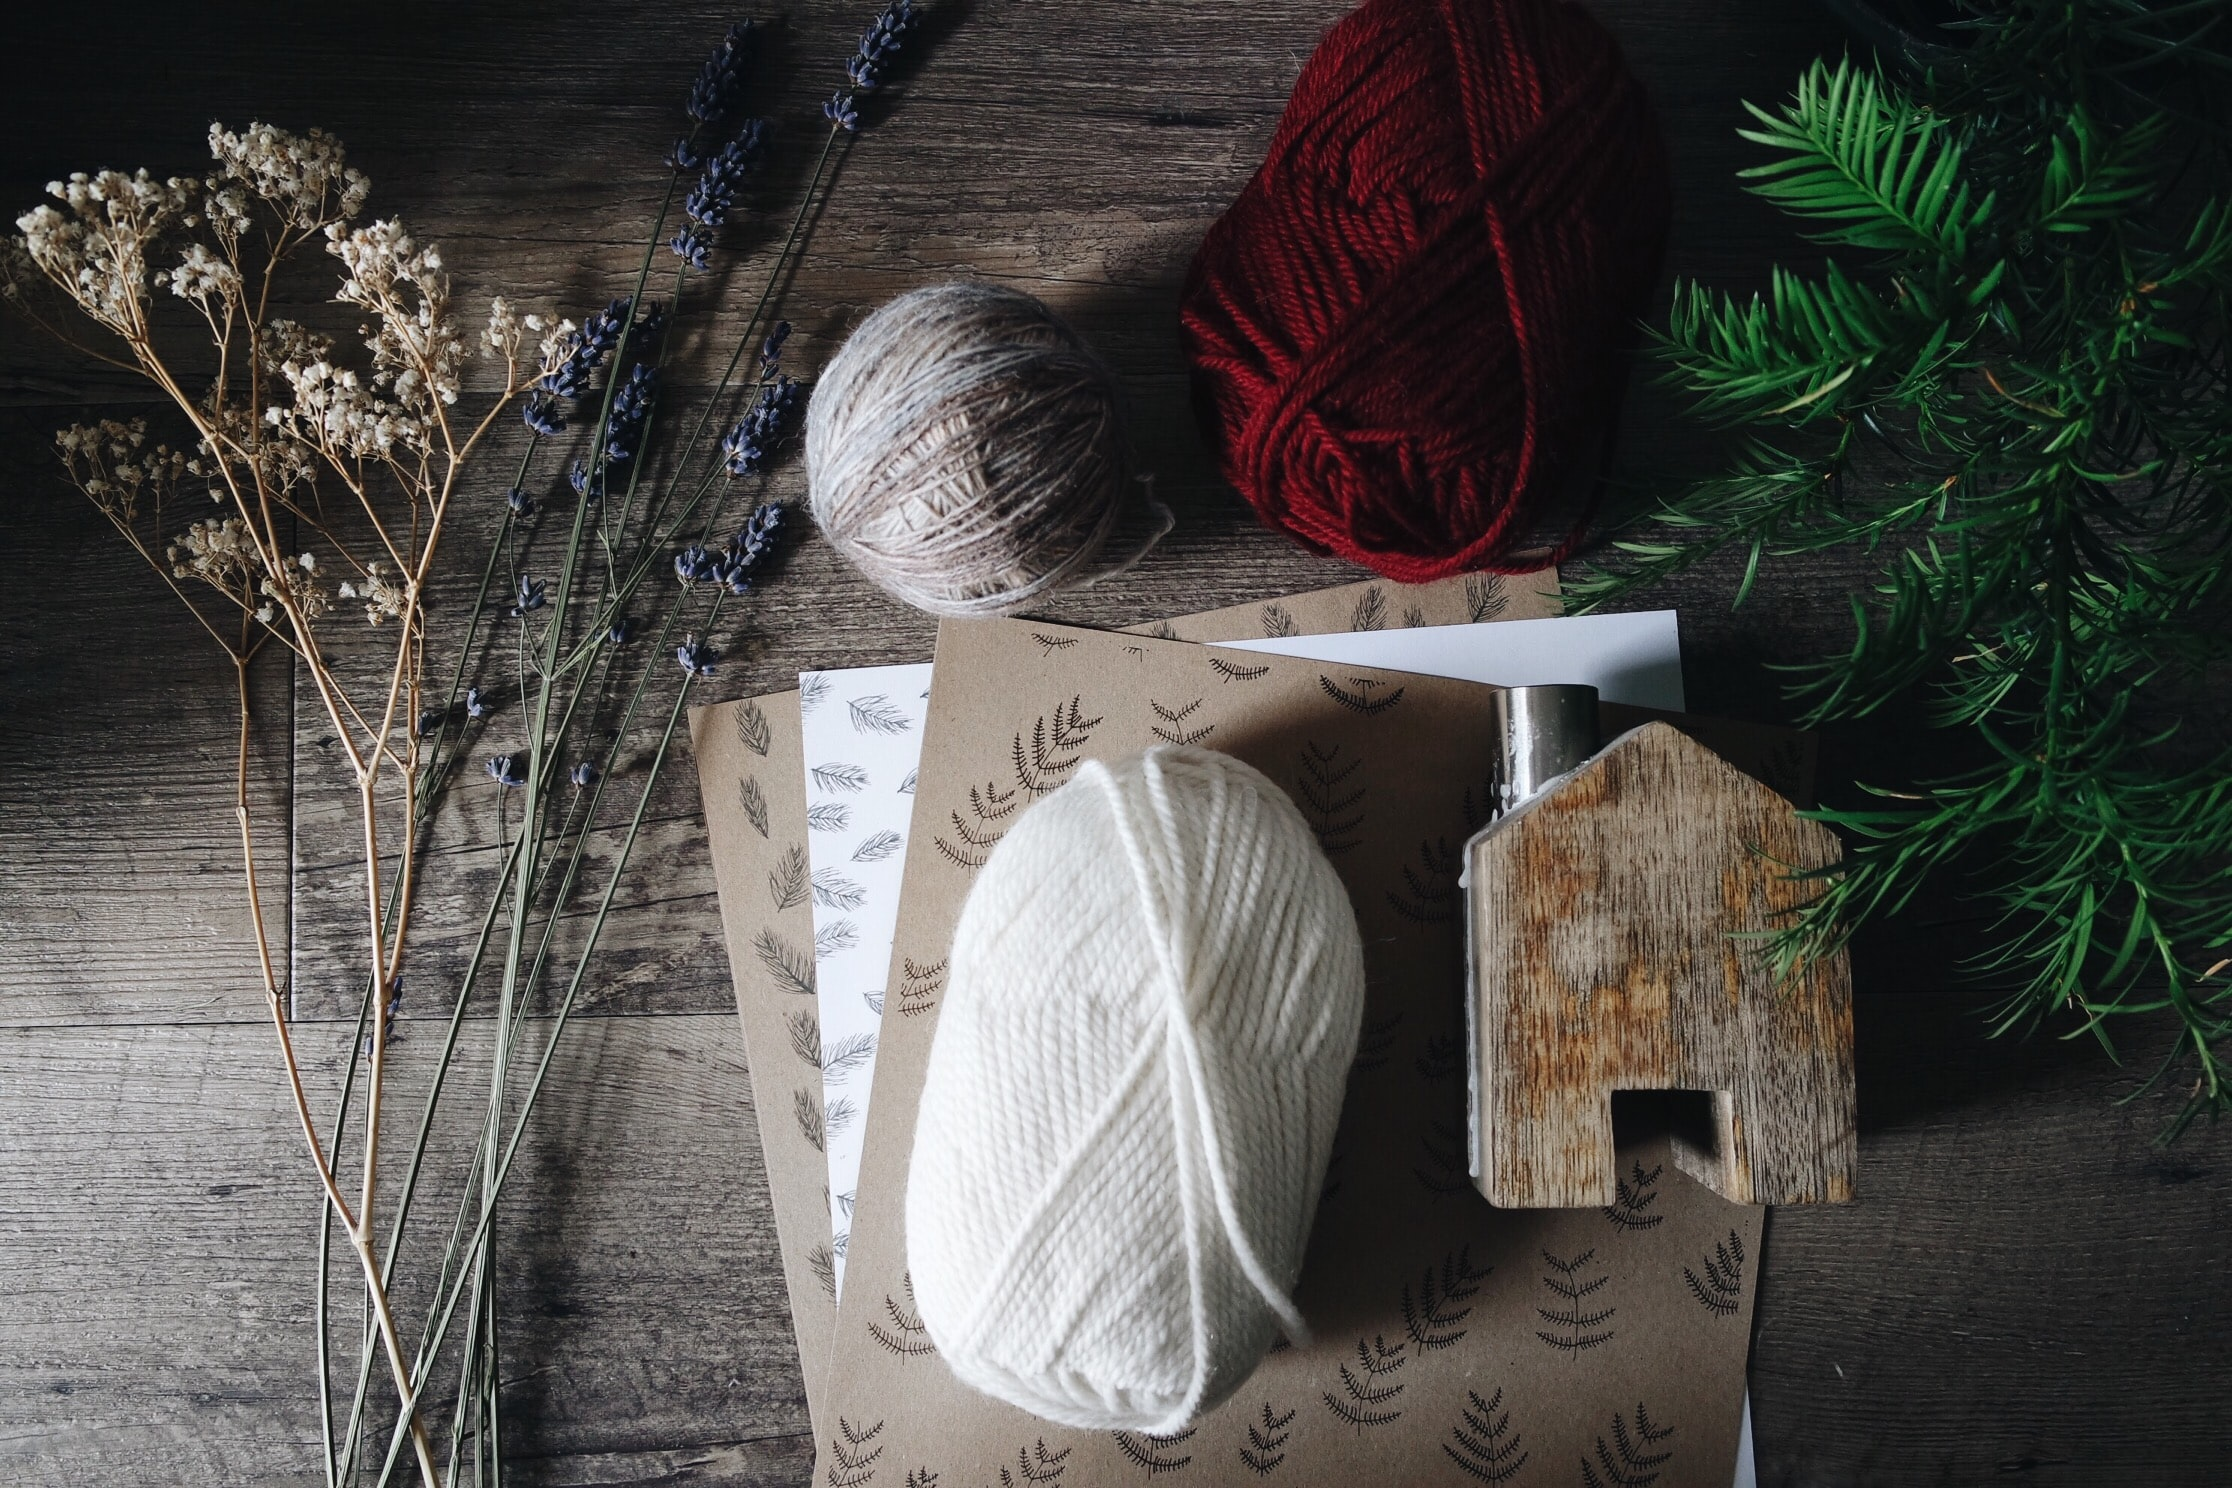 brown, white, and red yarn near flowers